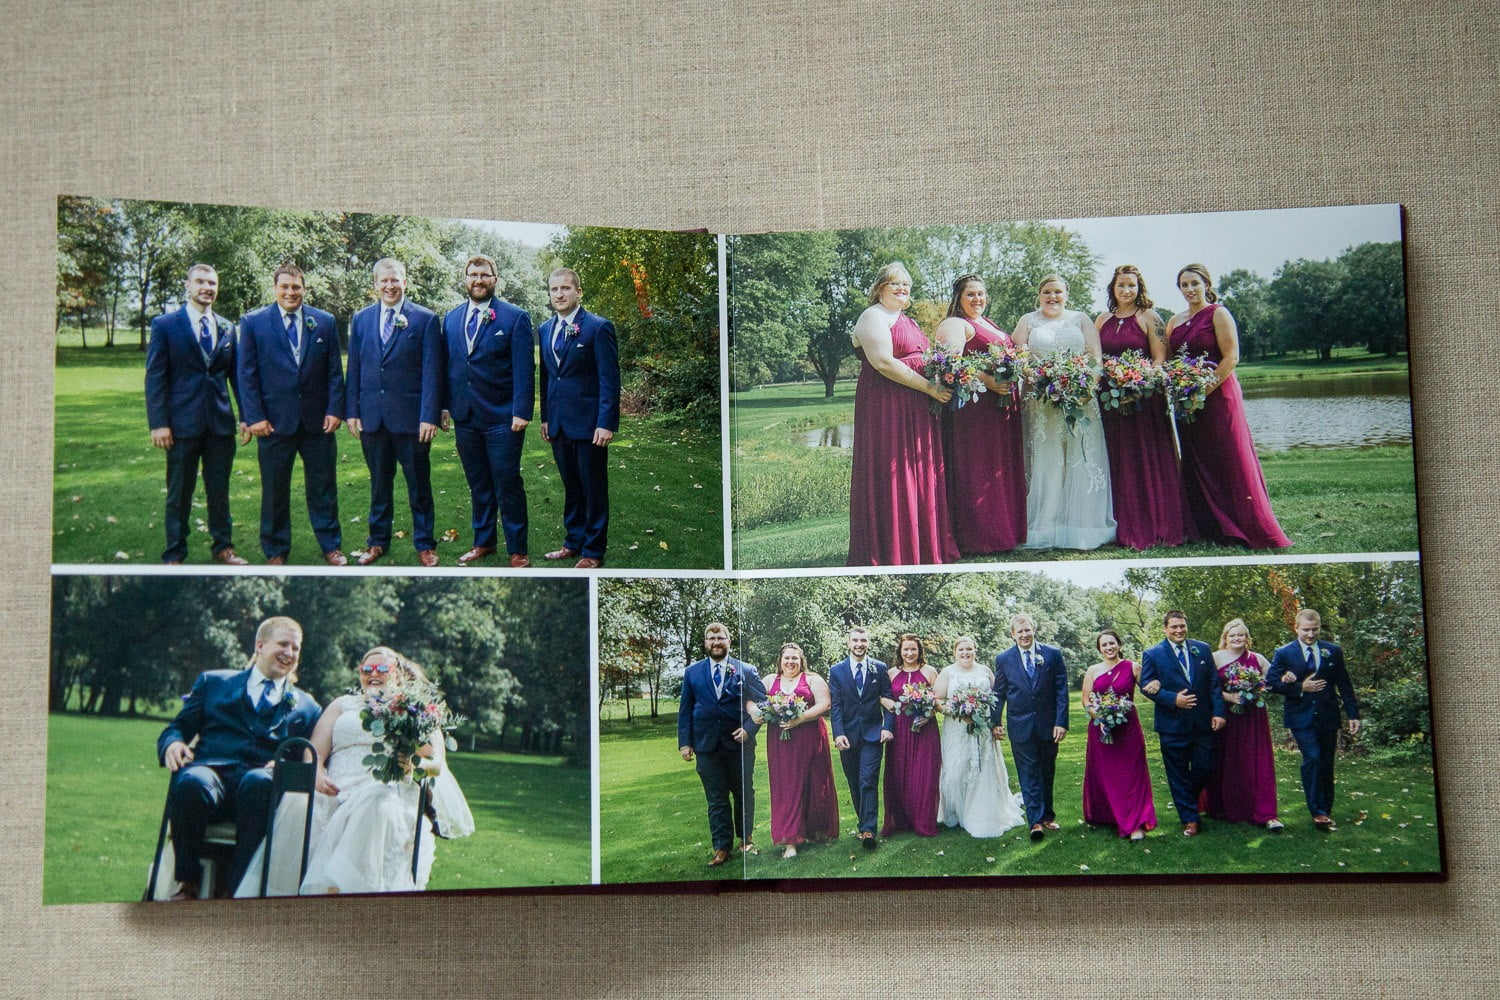 wedding albums are important